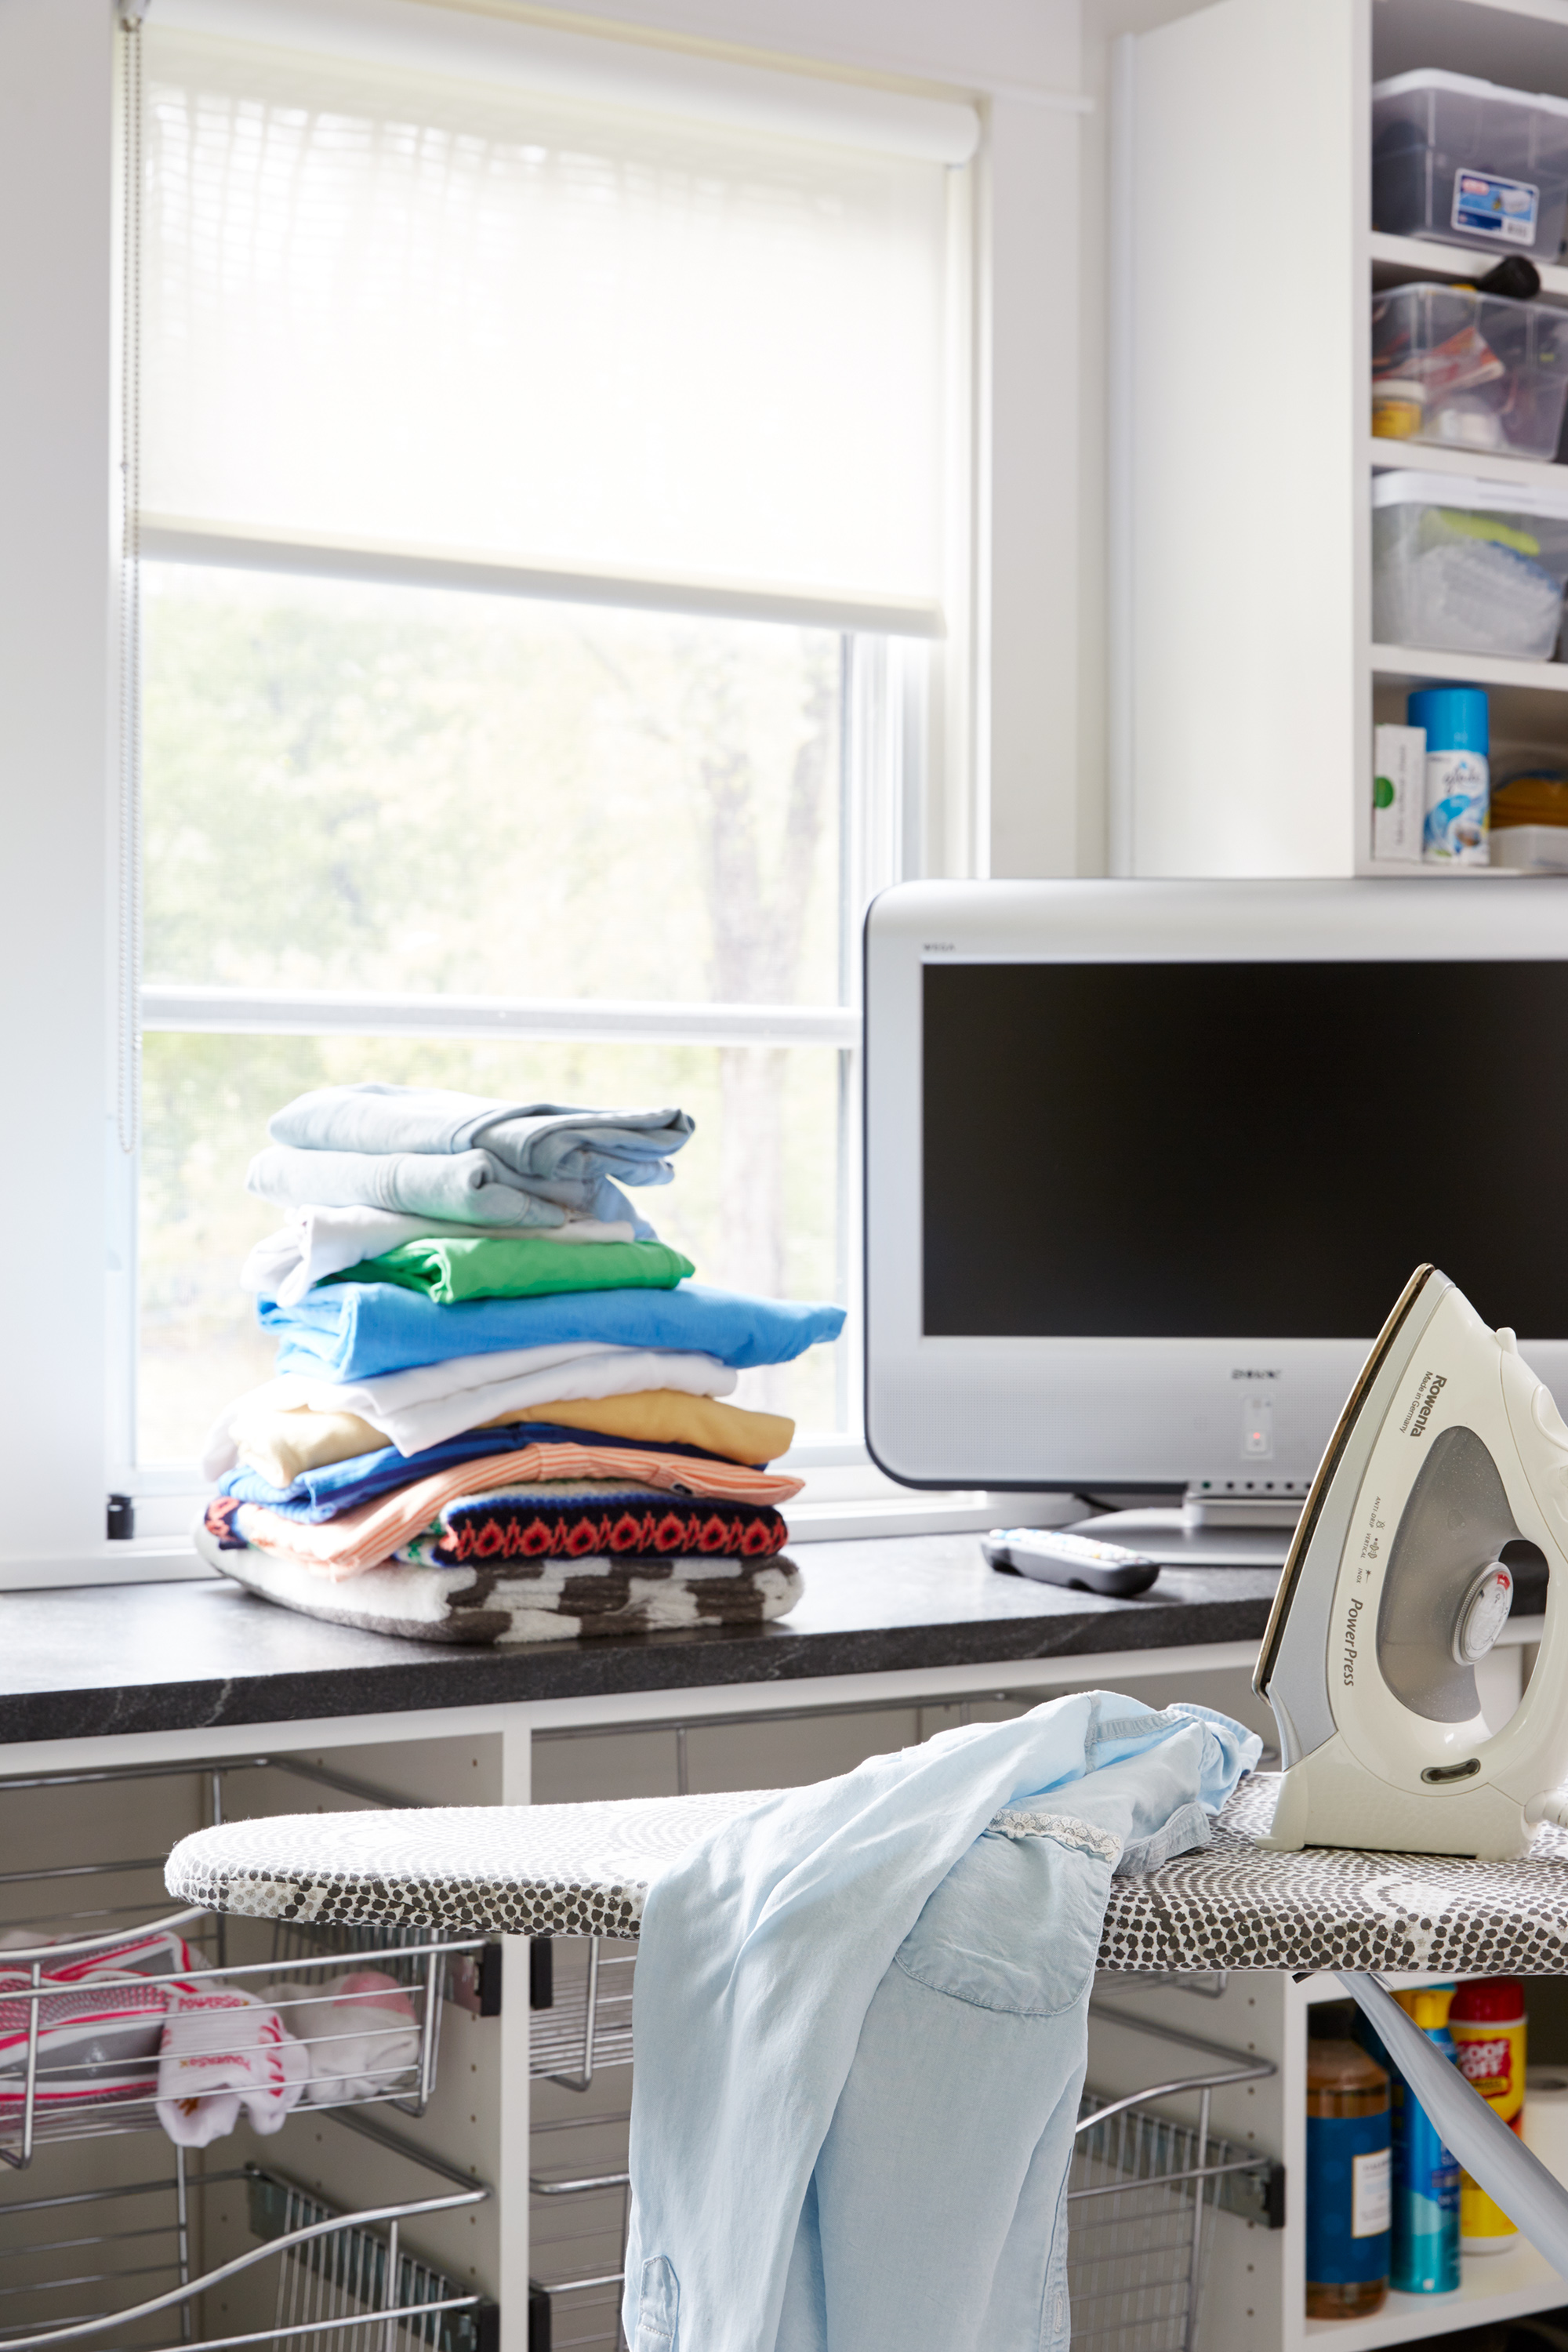 Juliano laundry room with ironing board and tv